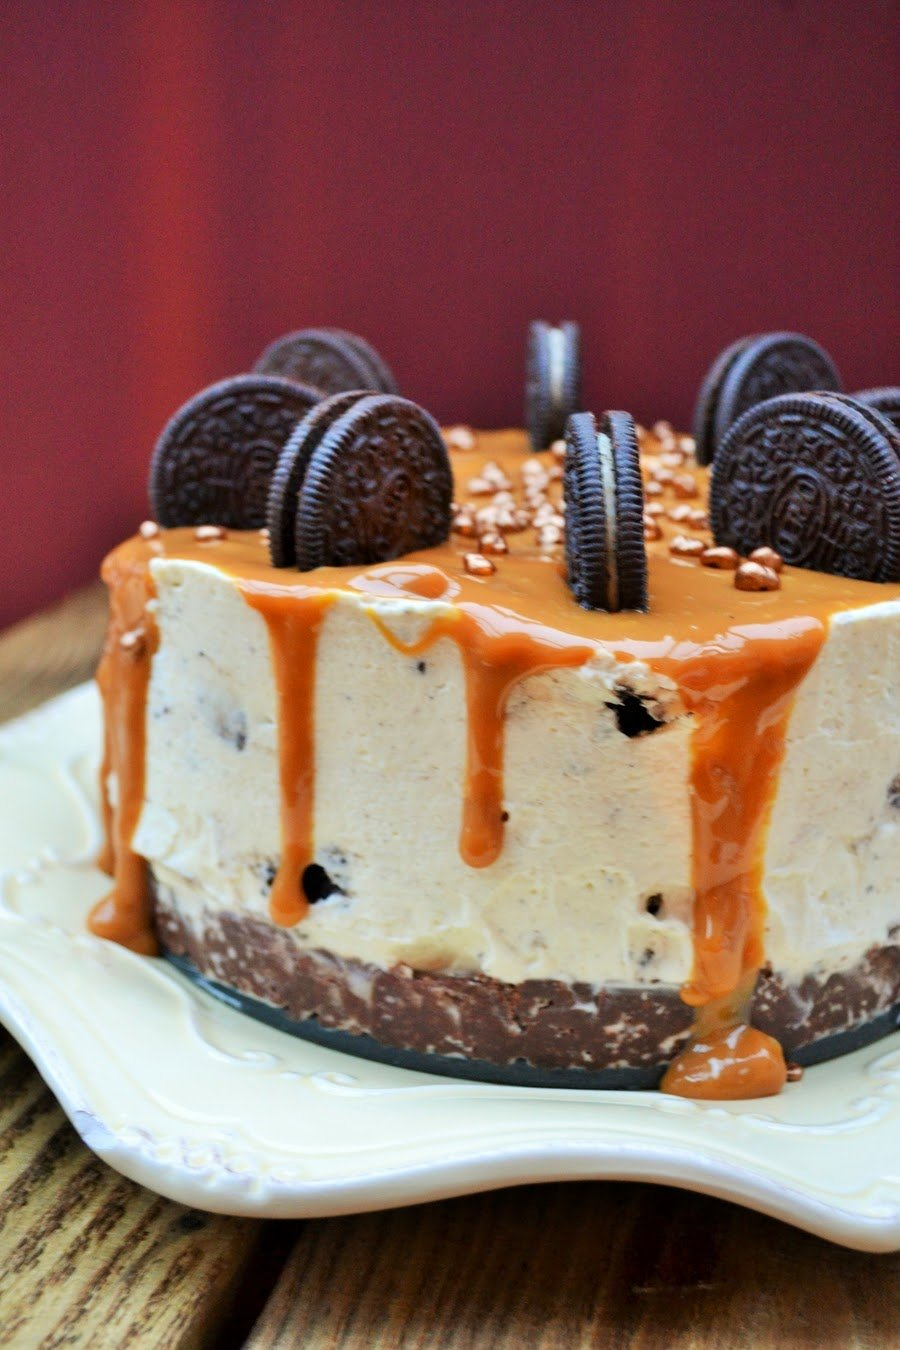 oreo and caramel cheesecake